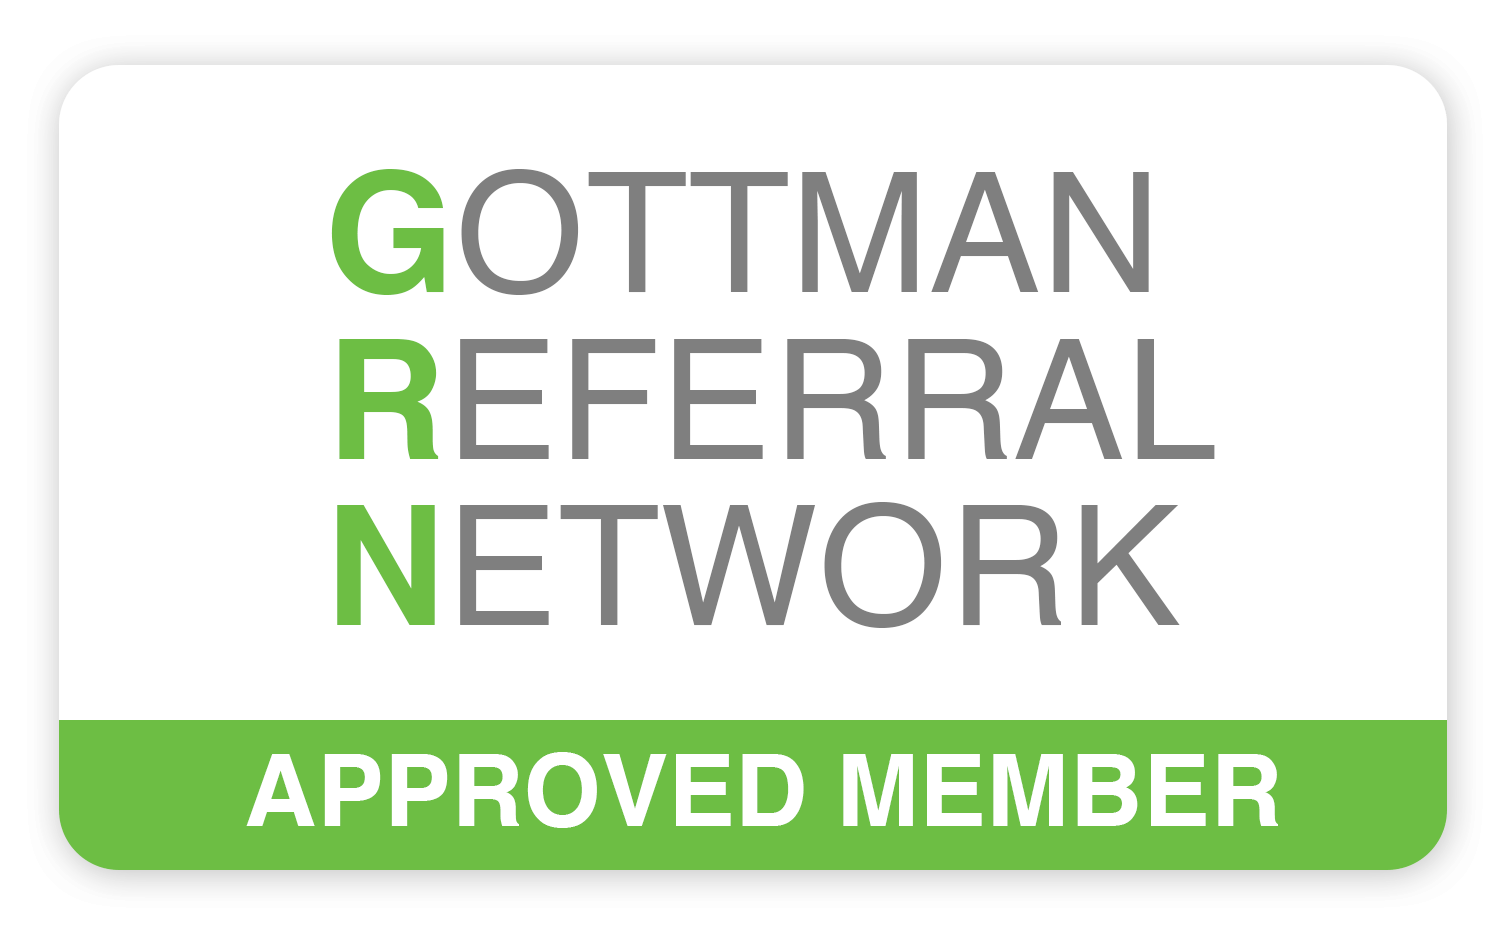 Rosalia Vazquez-Herranen's profile on the Gottman Referral Network